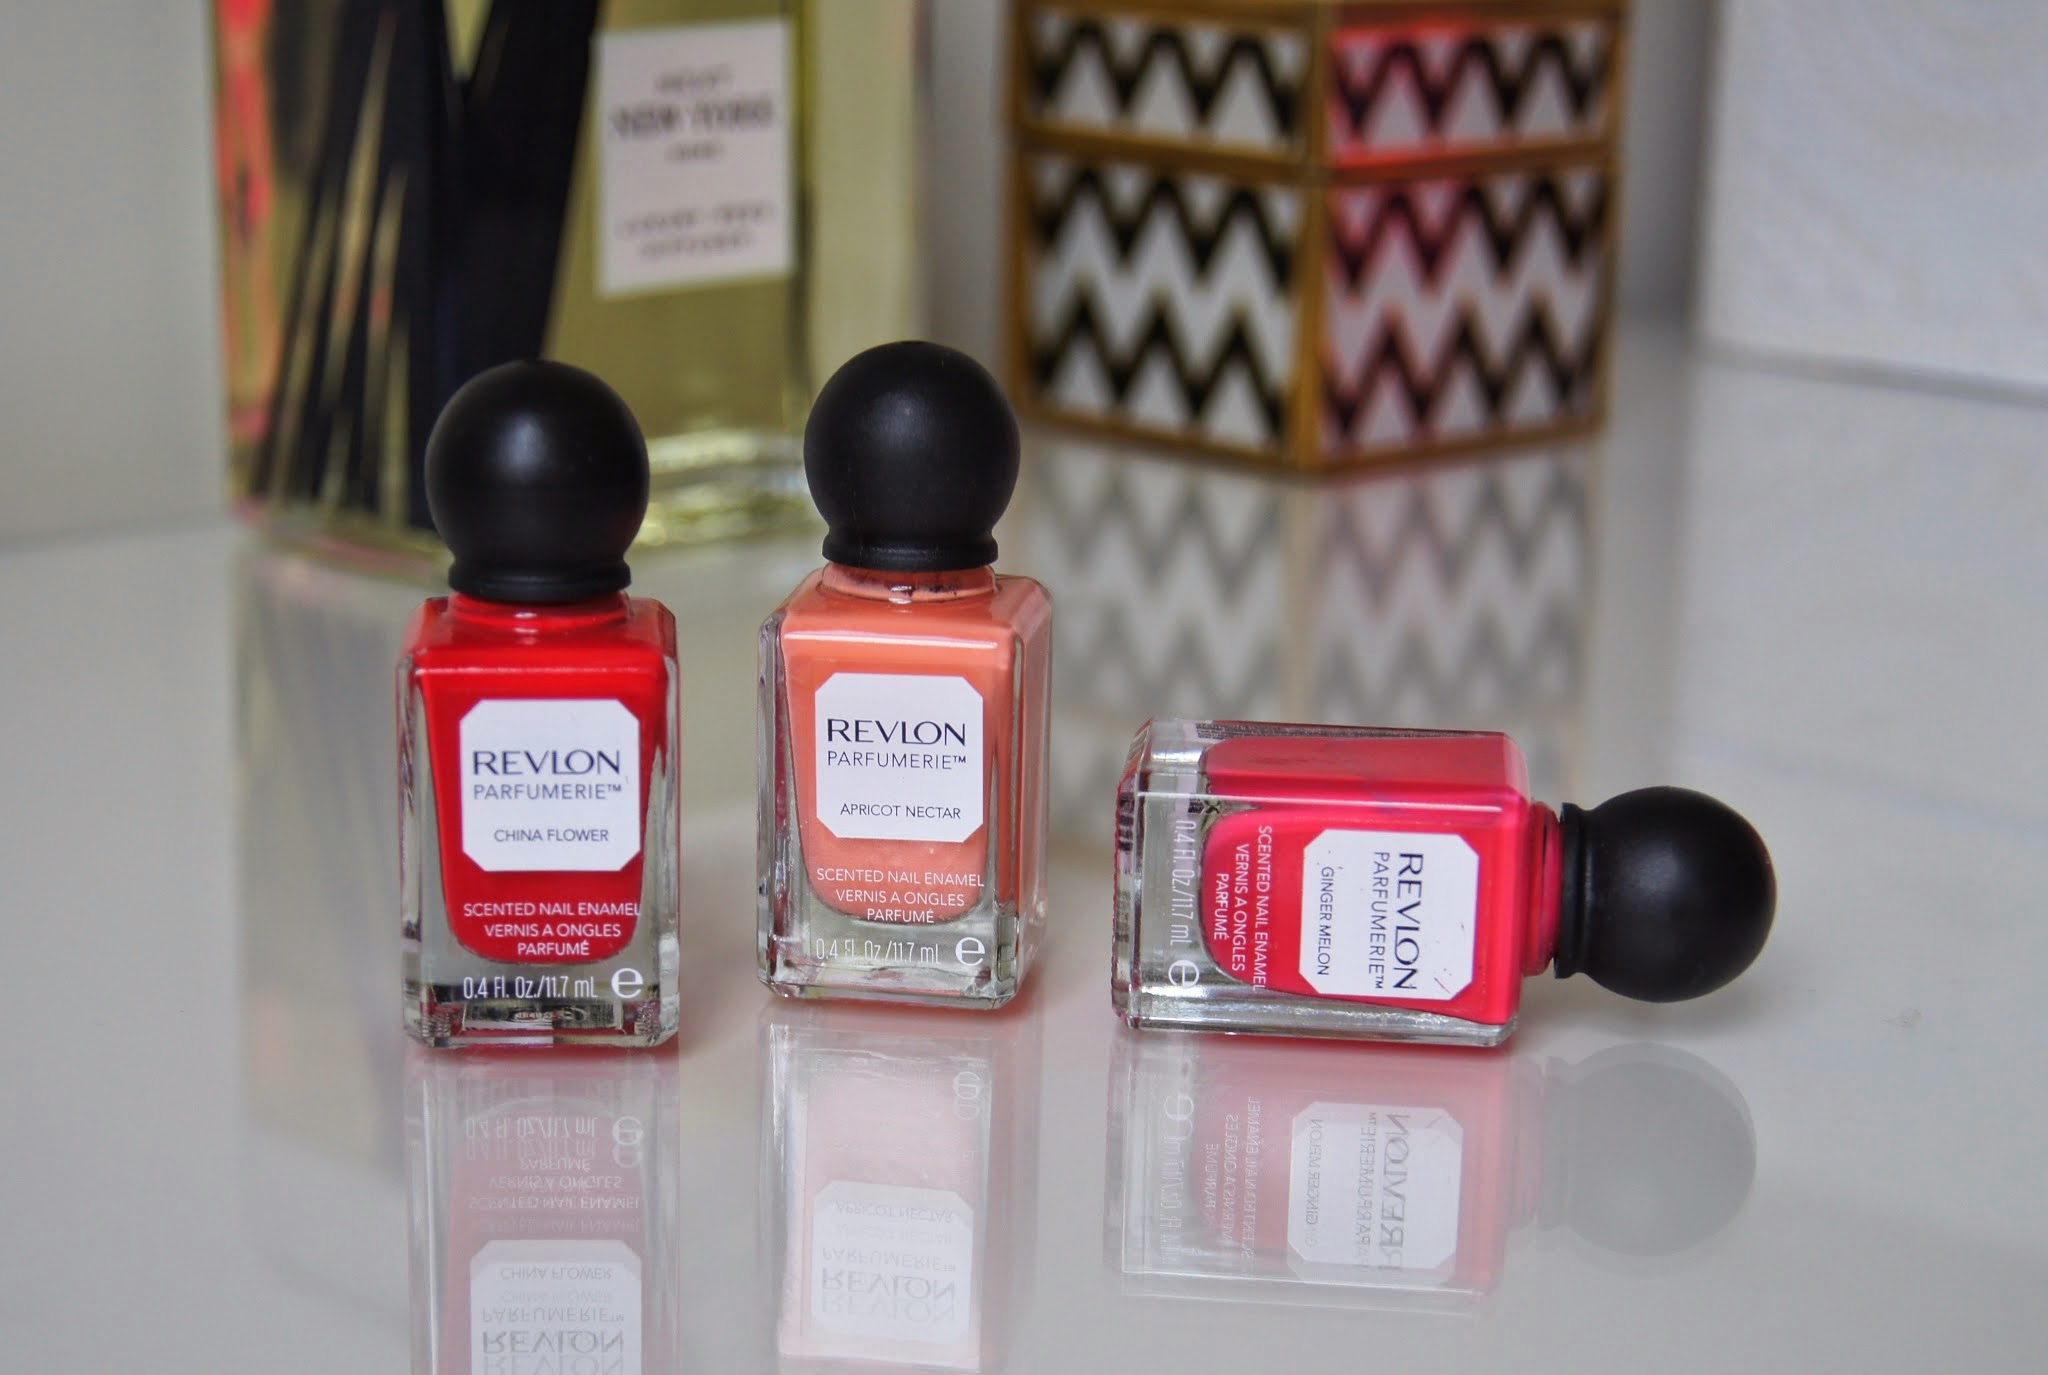 revlon parfumerie scented nail enamel review china flower apricot nectar ginger melon